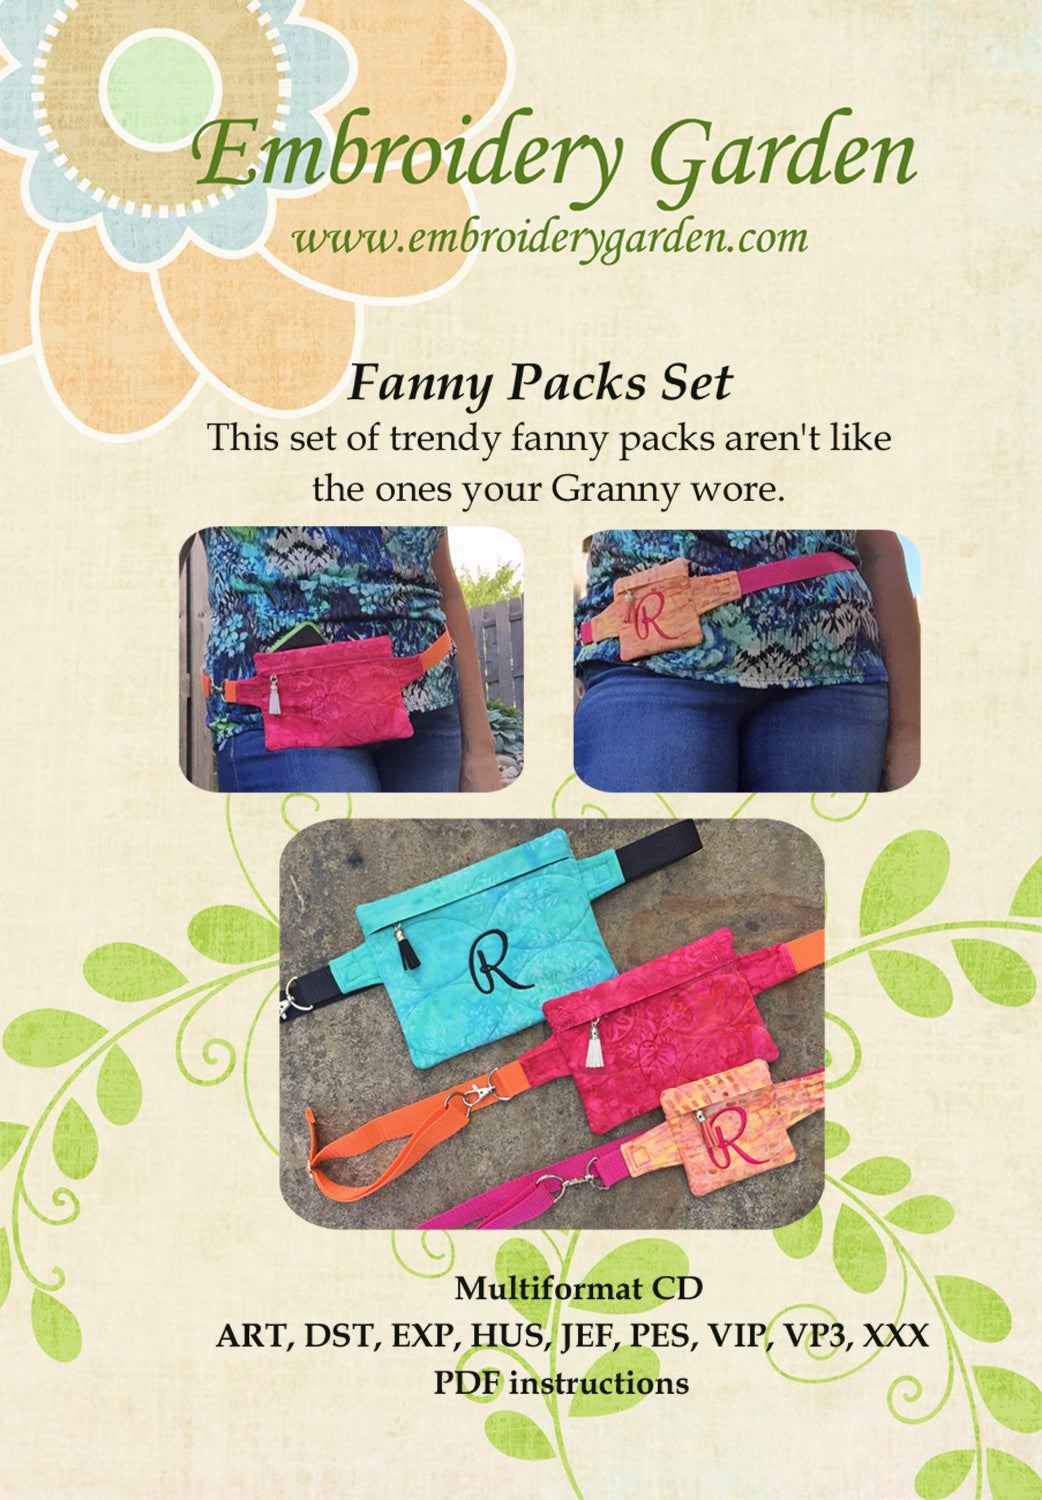 Embroidery Garden Fanny Packs Set